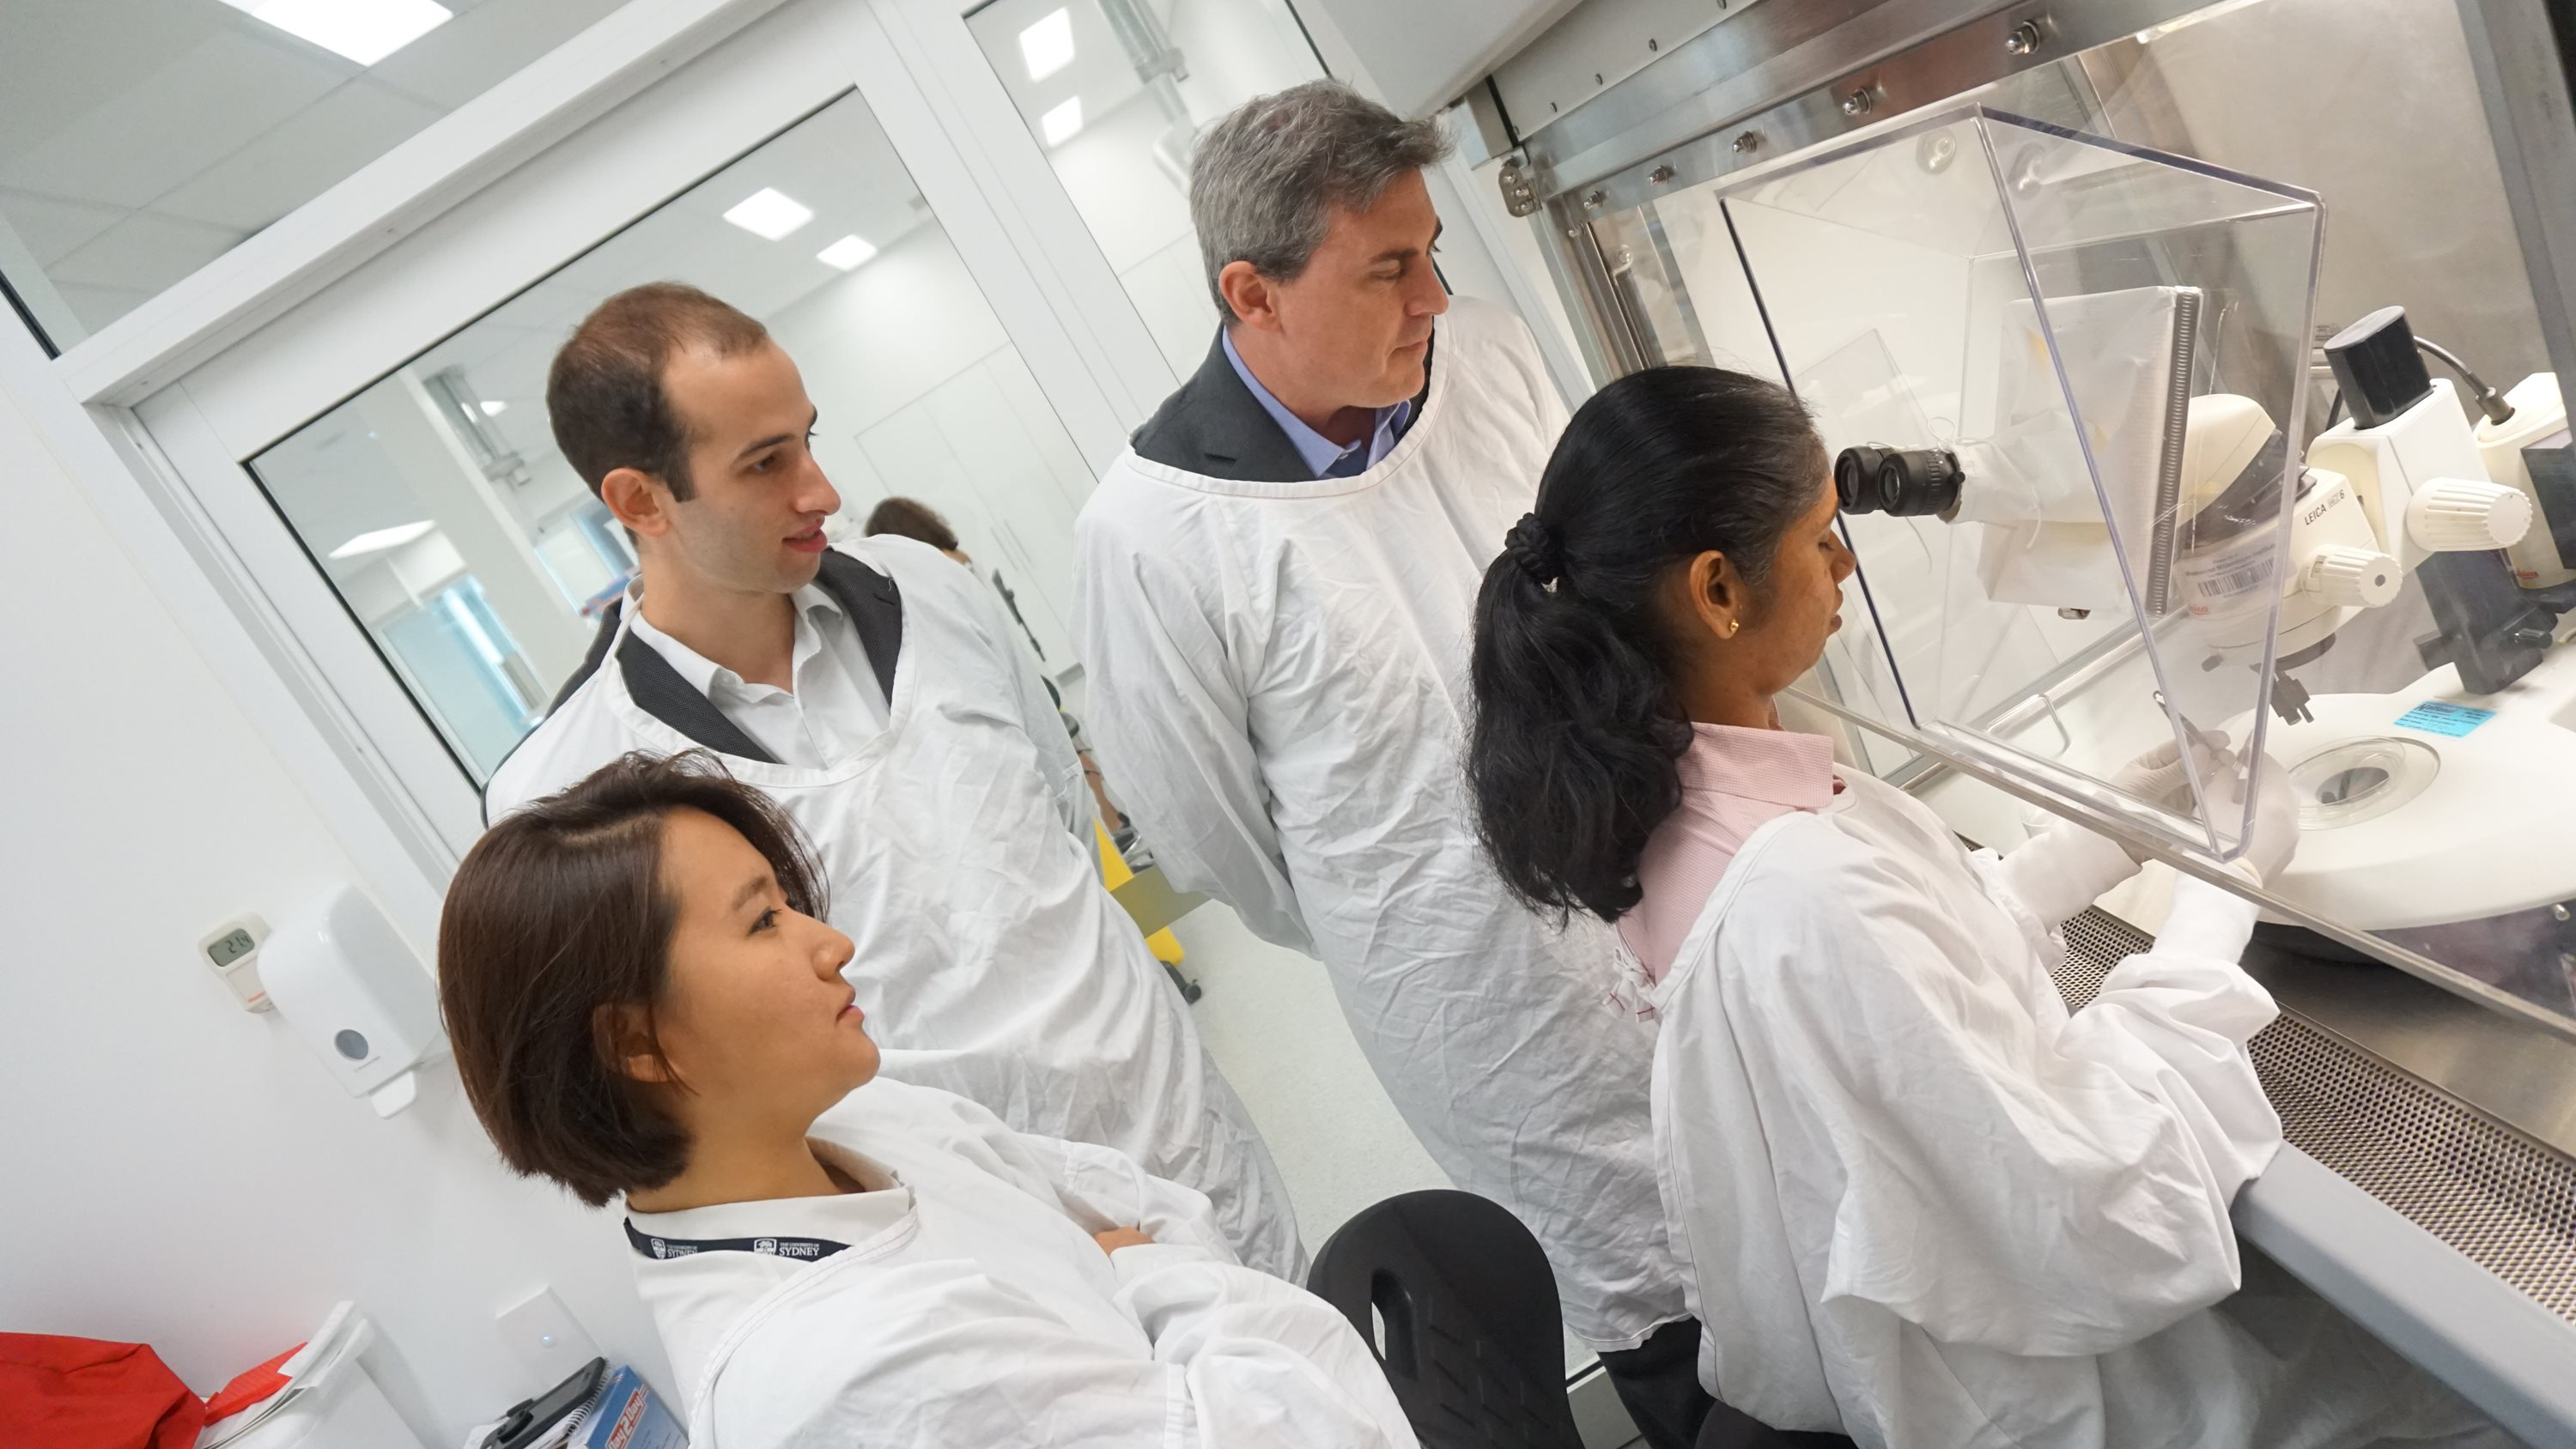 Dr Andrew White (Back right) and members of the Glaucoma Cell Biology Group